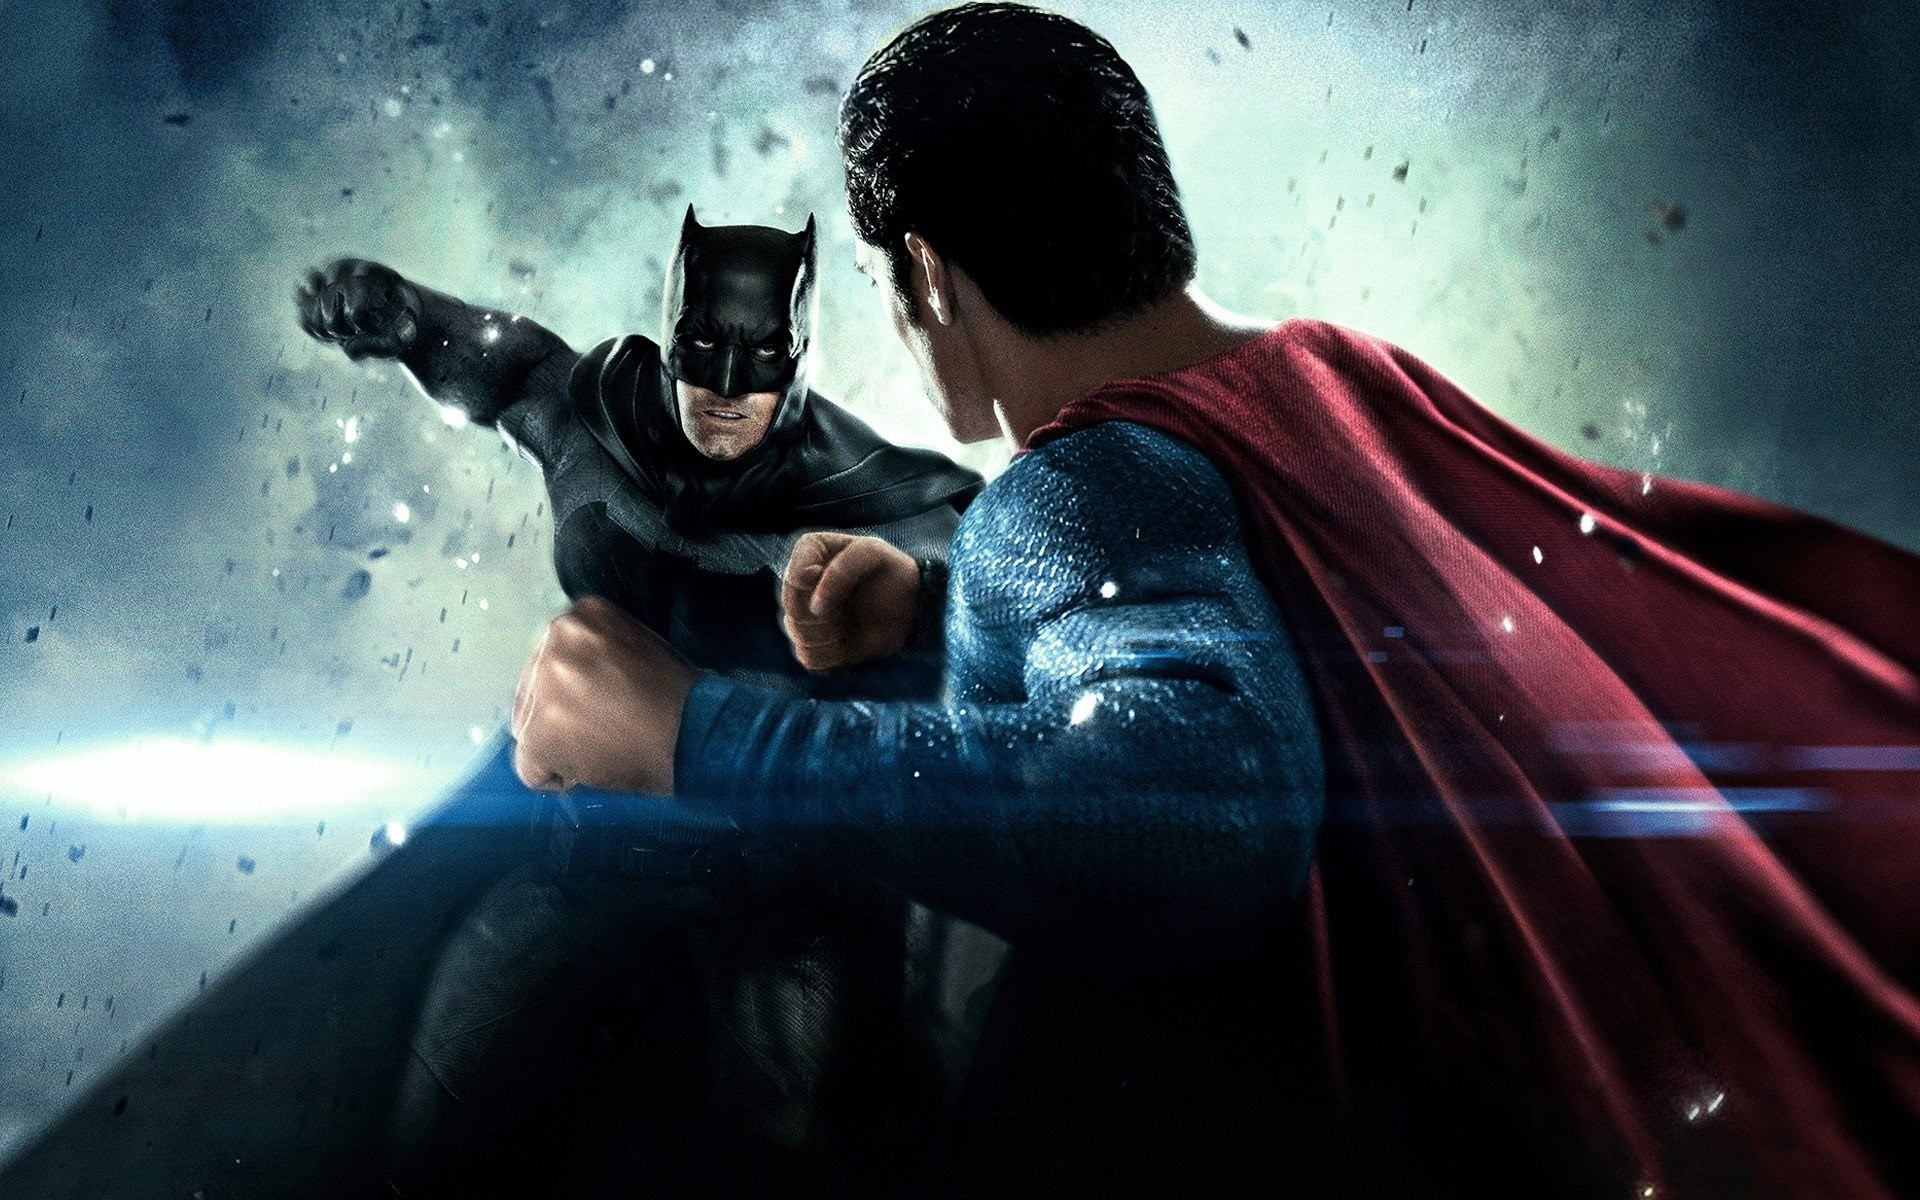 1920x1200  batman vs superman hd wallpaper image